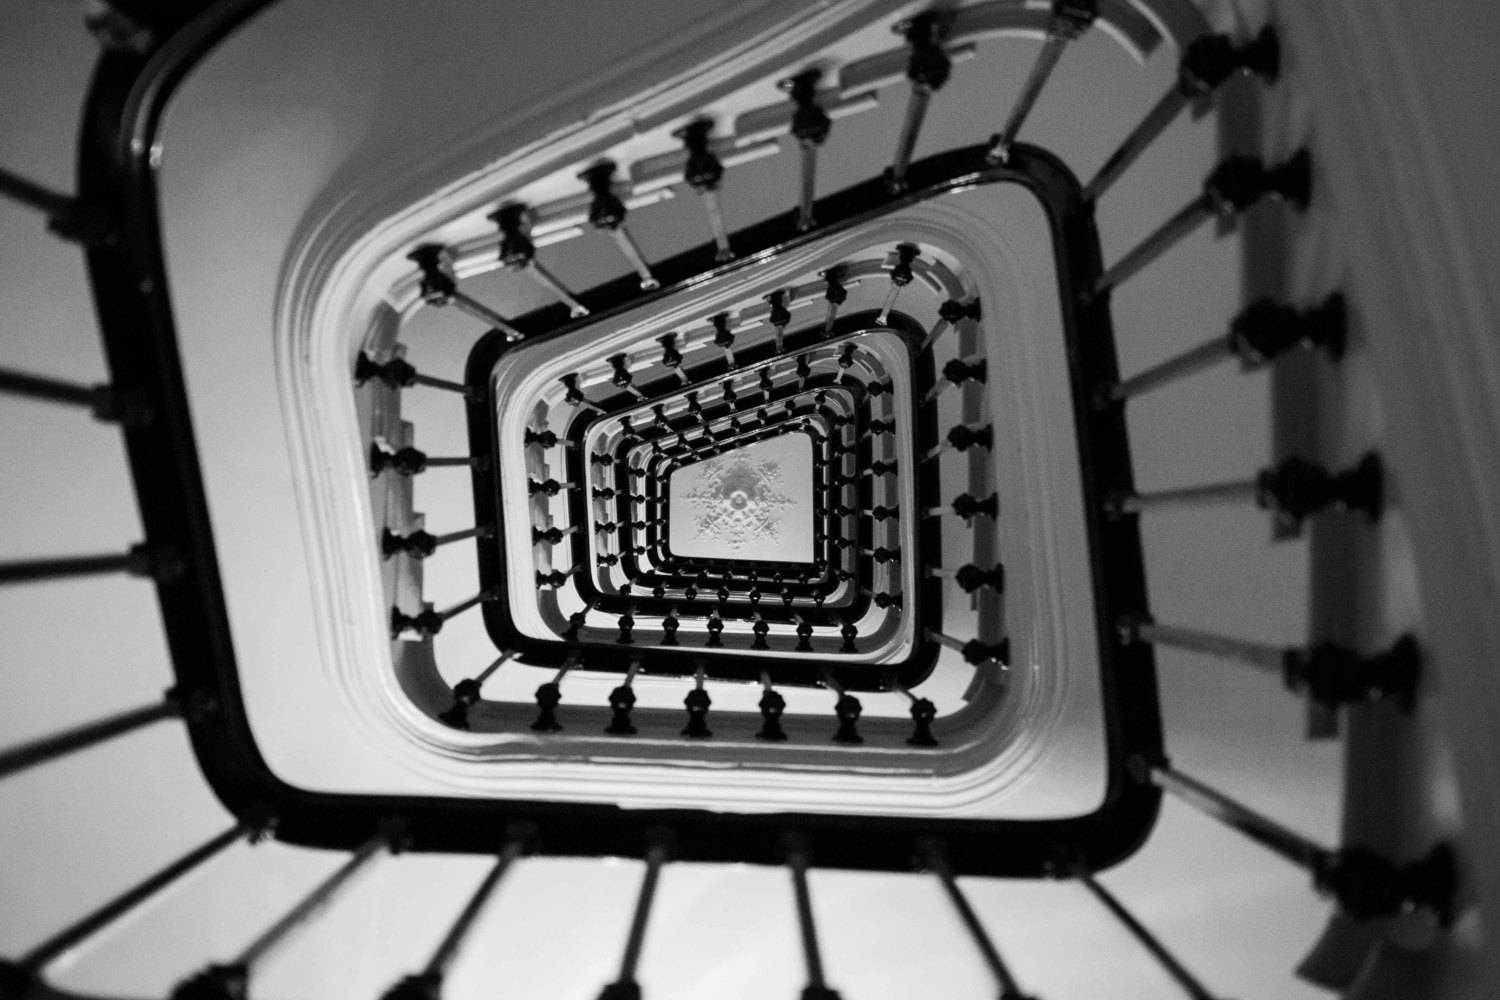 Black & White Photos: Paris Photography – Taking The Stairs In Regarding Most Up To Date Black And White Paris Wall Art (View 6 of 25)